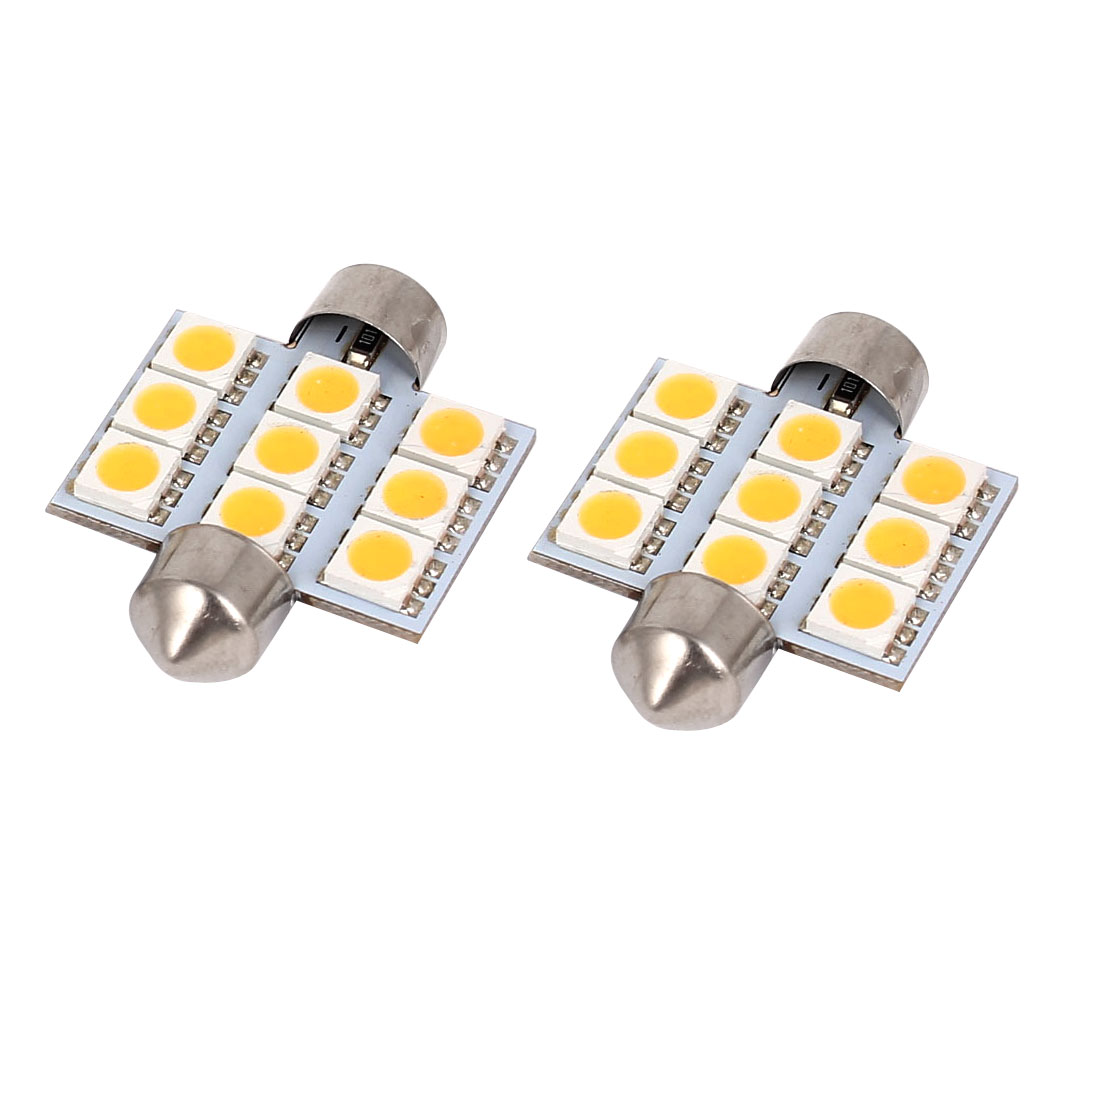 2 Pcs 36mm 9-LED 5050 SMD Warm White Festoon Dome Map Reading Light 3021 DE3423 Internal